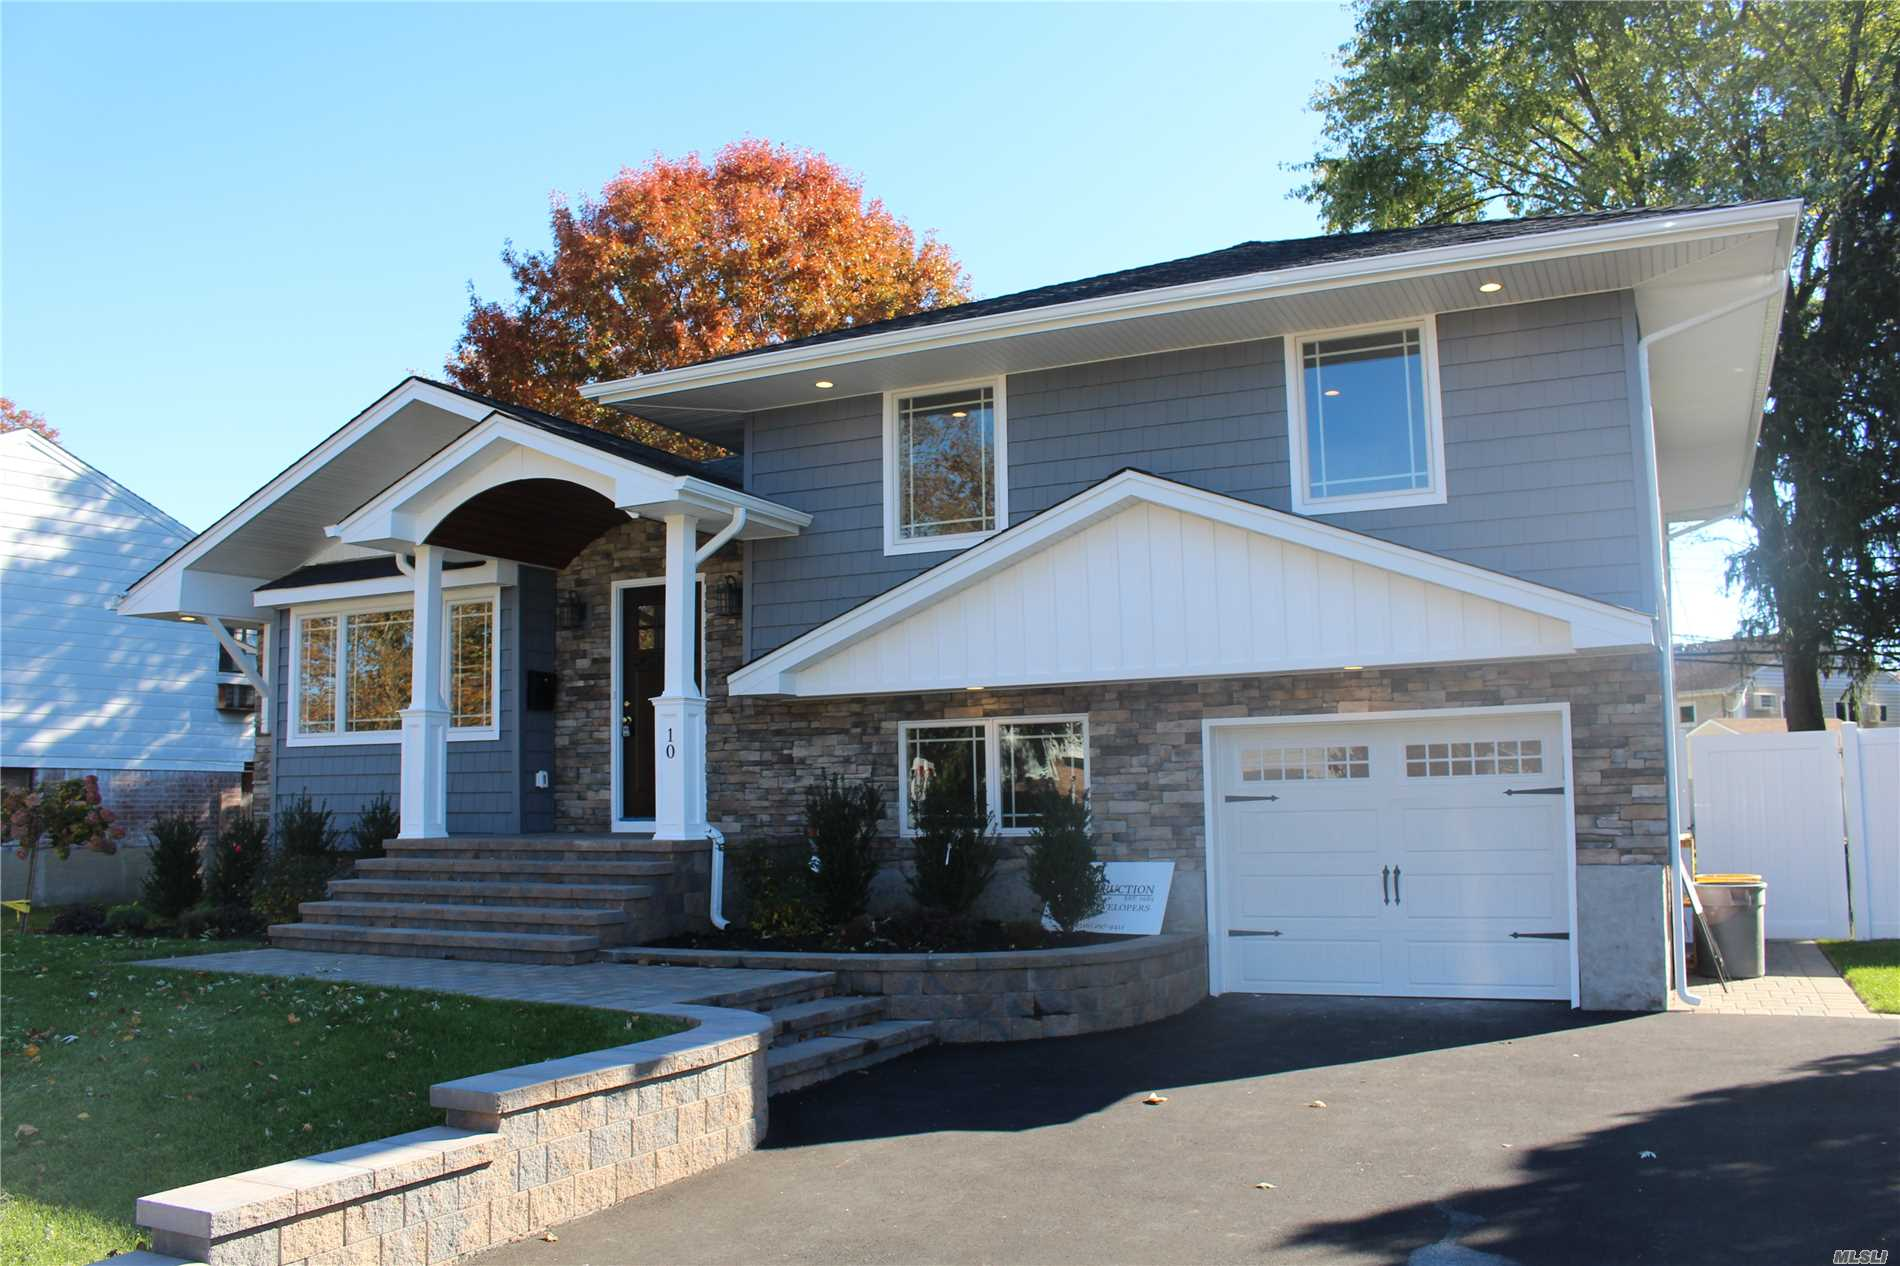 Completely Renovated Split Level. Barrel Front Portico W/Bead Board Ceiling. All New Kitchen W/Quartz Contertops & Ss Appliances Incl Microwave. 2.5 New Baths, New Cac, Refinished Oak Flooring Many Hi Hates! Crown Moulding New Anderson Sliding Door In Dr, New Architectural Roof New Siding With Front Stonework, New Pavers Patio New Elec Garage Door And Driveway New Igs Prof Landscaping